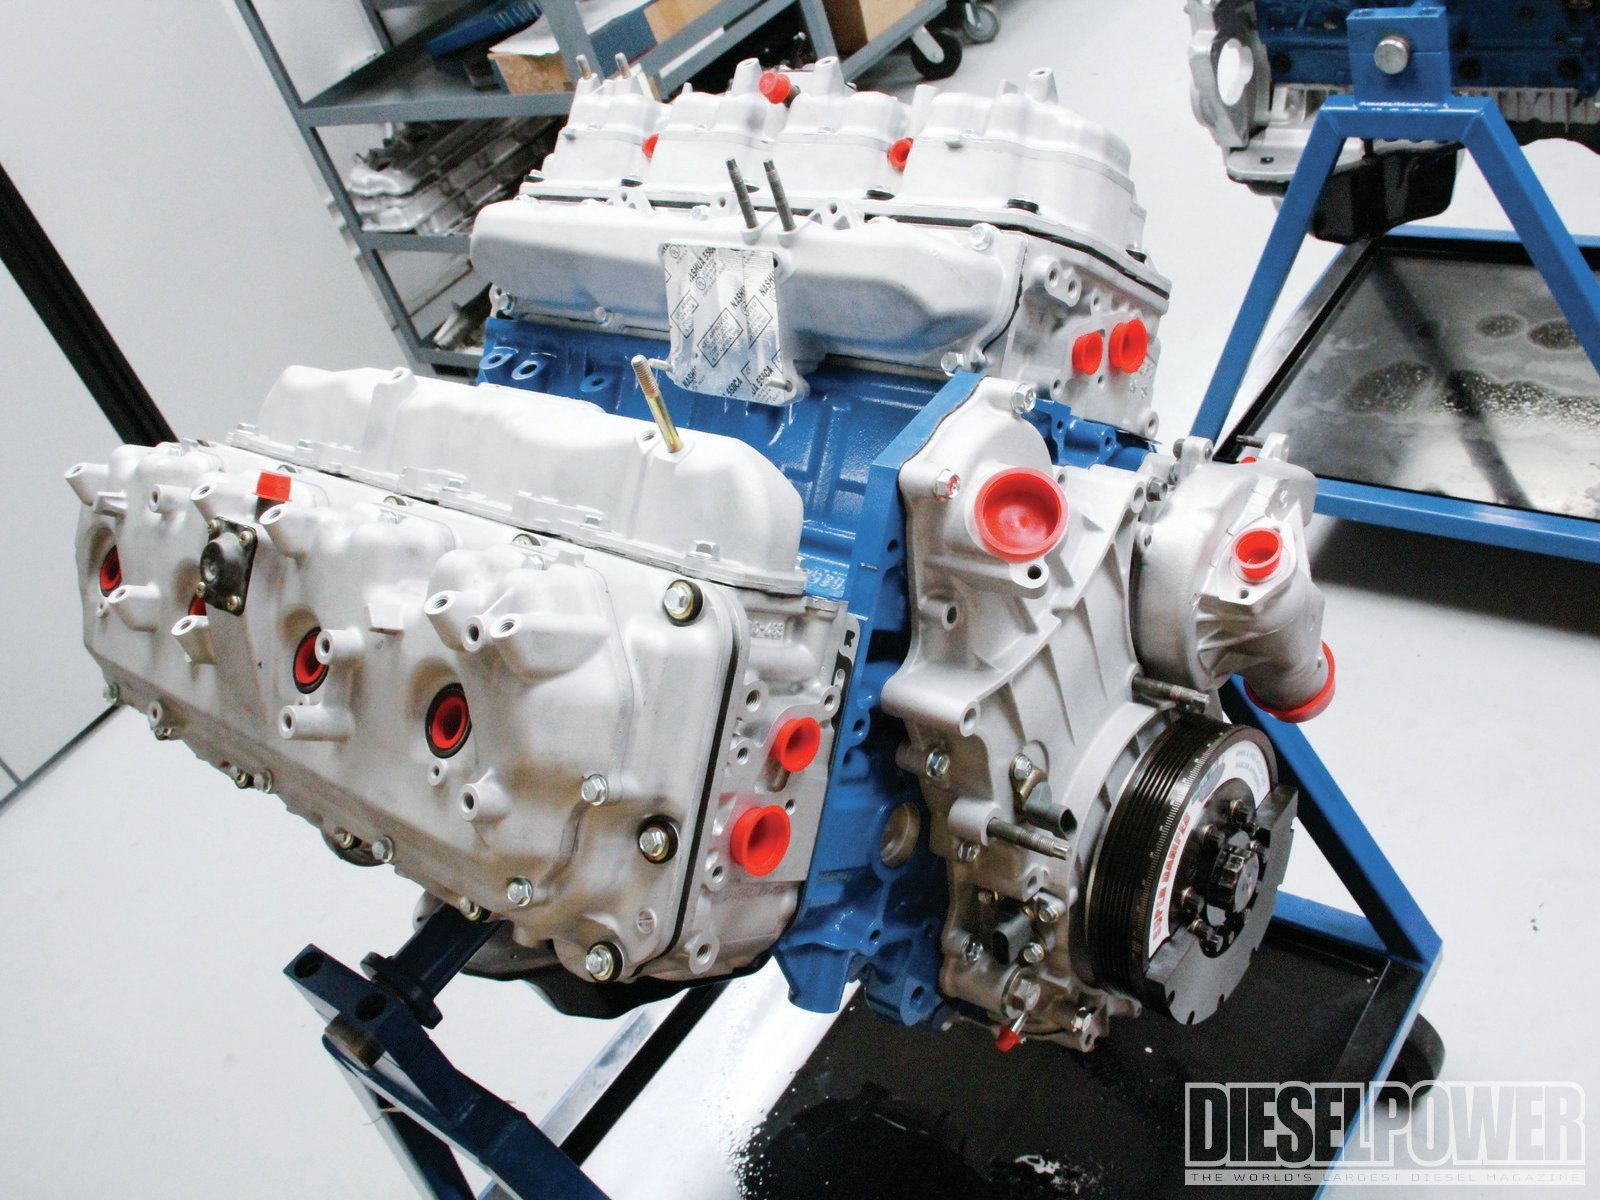 Duramax Engine Diagram Million Mile Duramax Engine Rebuild & Image Gallery  Of Duramax Engine Diagram How